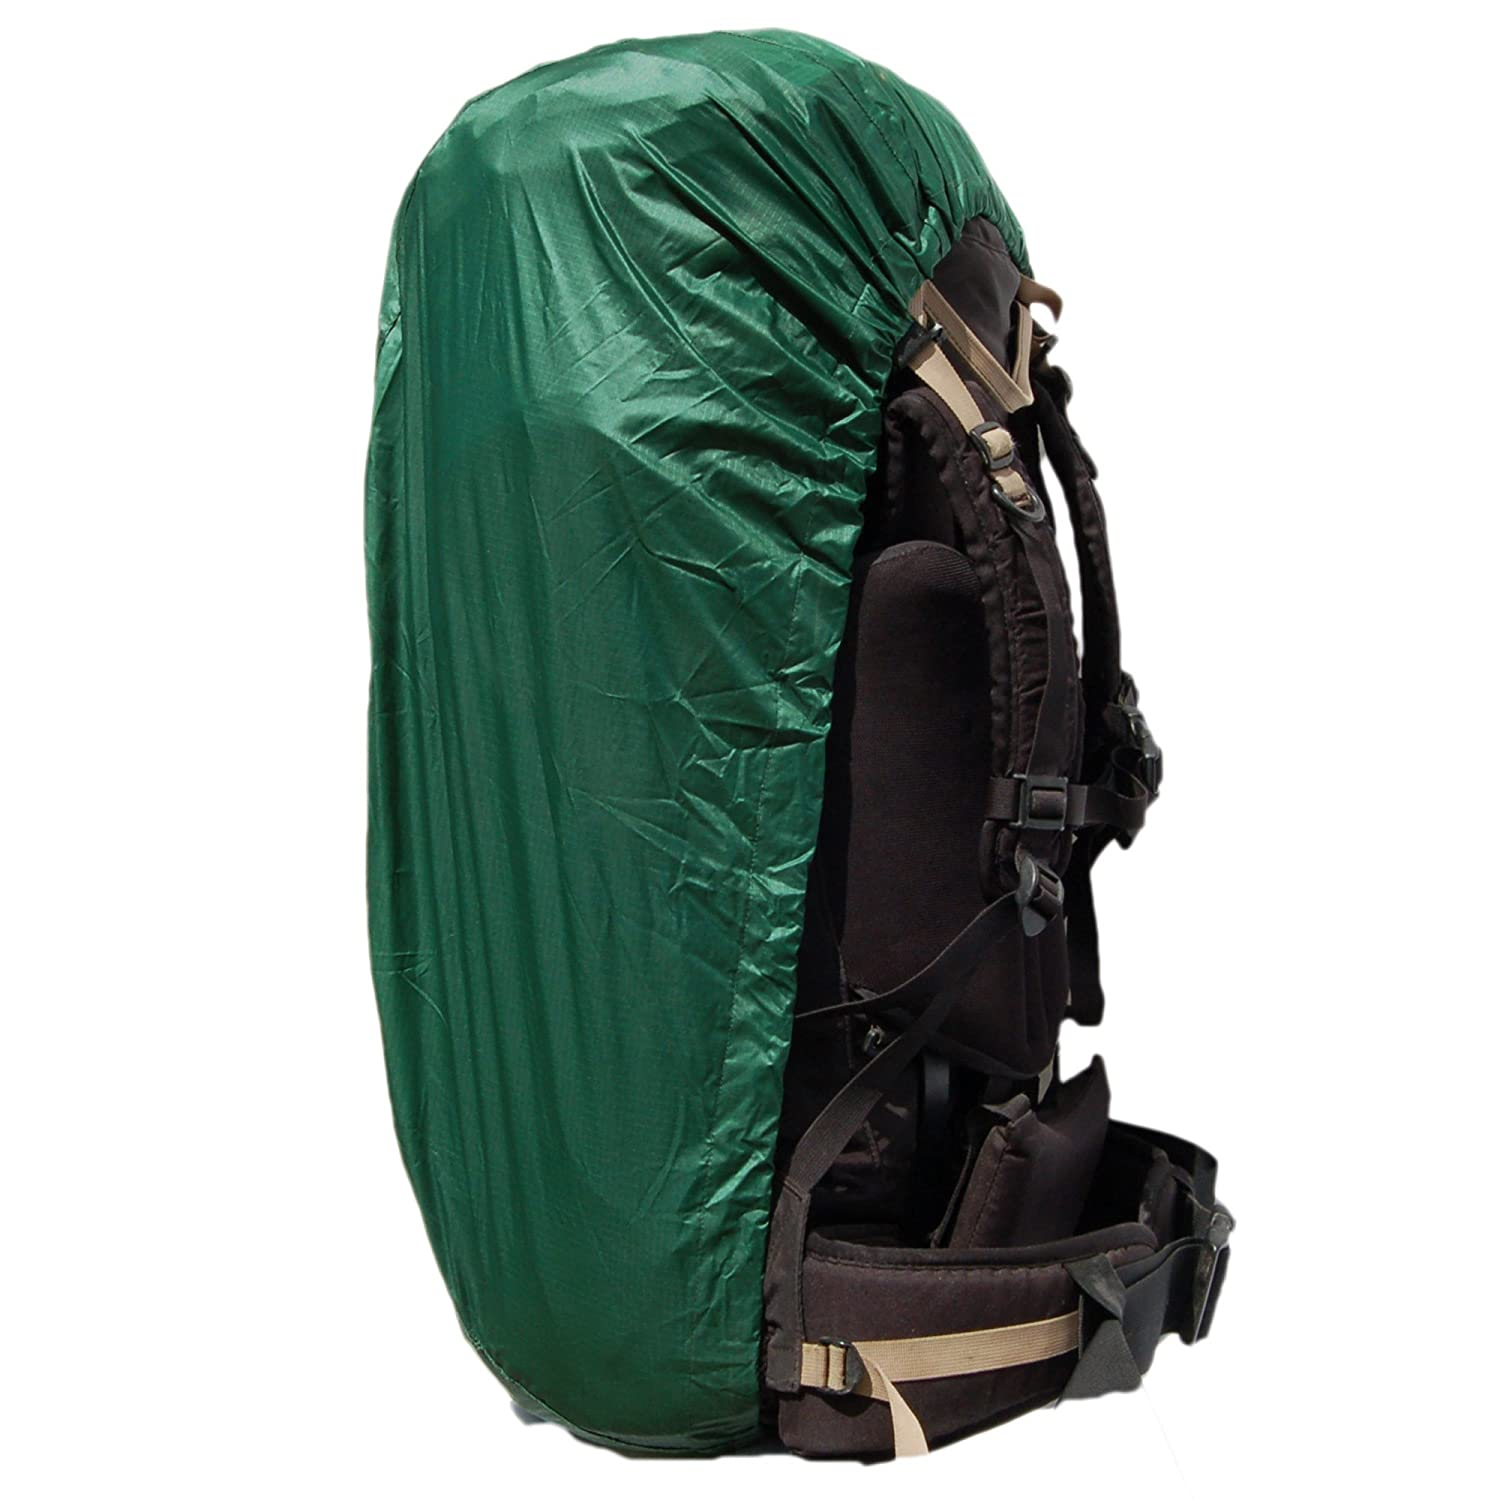 Aqua Quest Sil Backpack Cover - 100% Waterproof - Small, Medium, or Large - Green